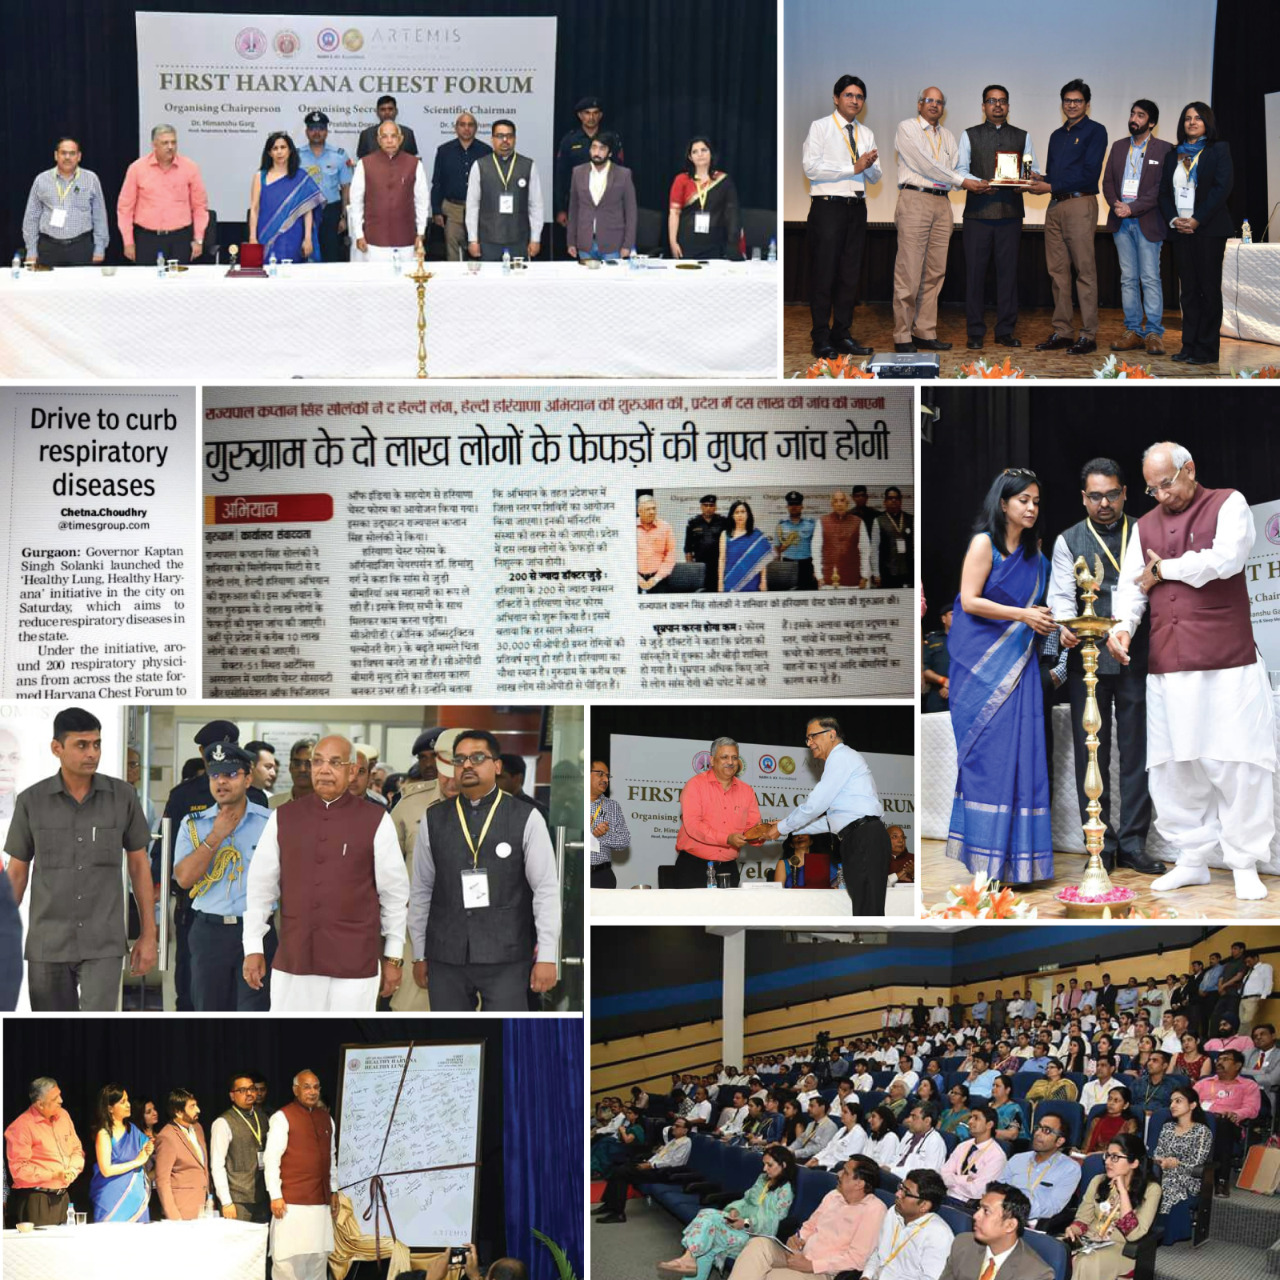 Inauguration of Haryana Chest Summit 2018 by his Excellency Kaptan Singh Solanki